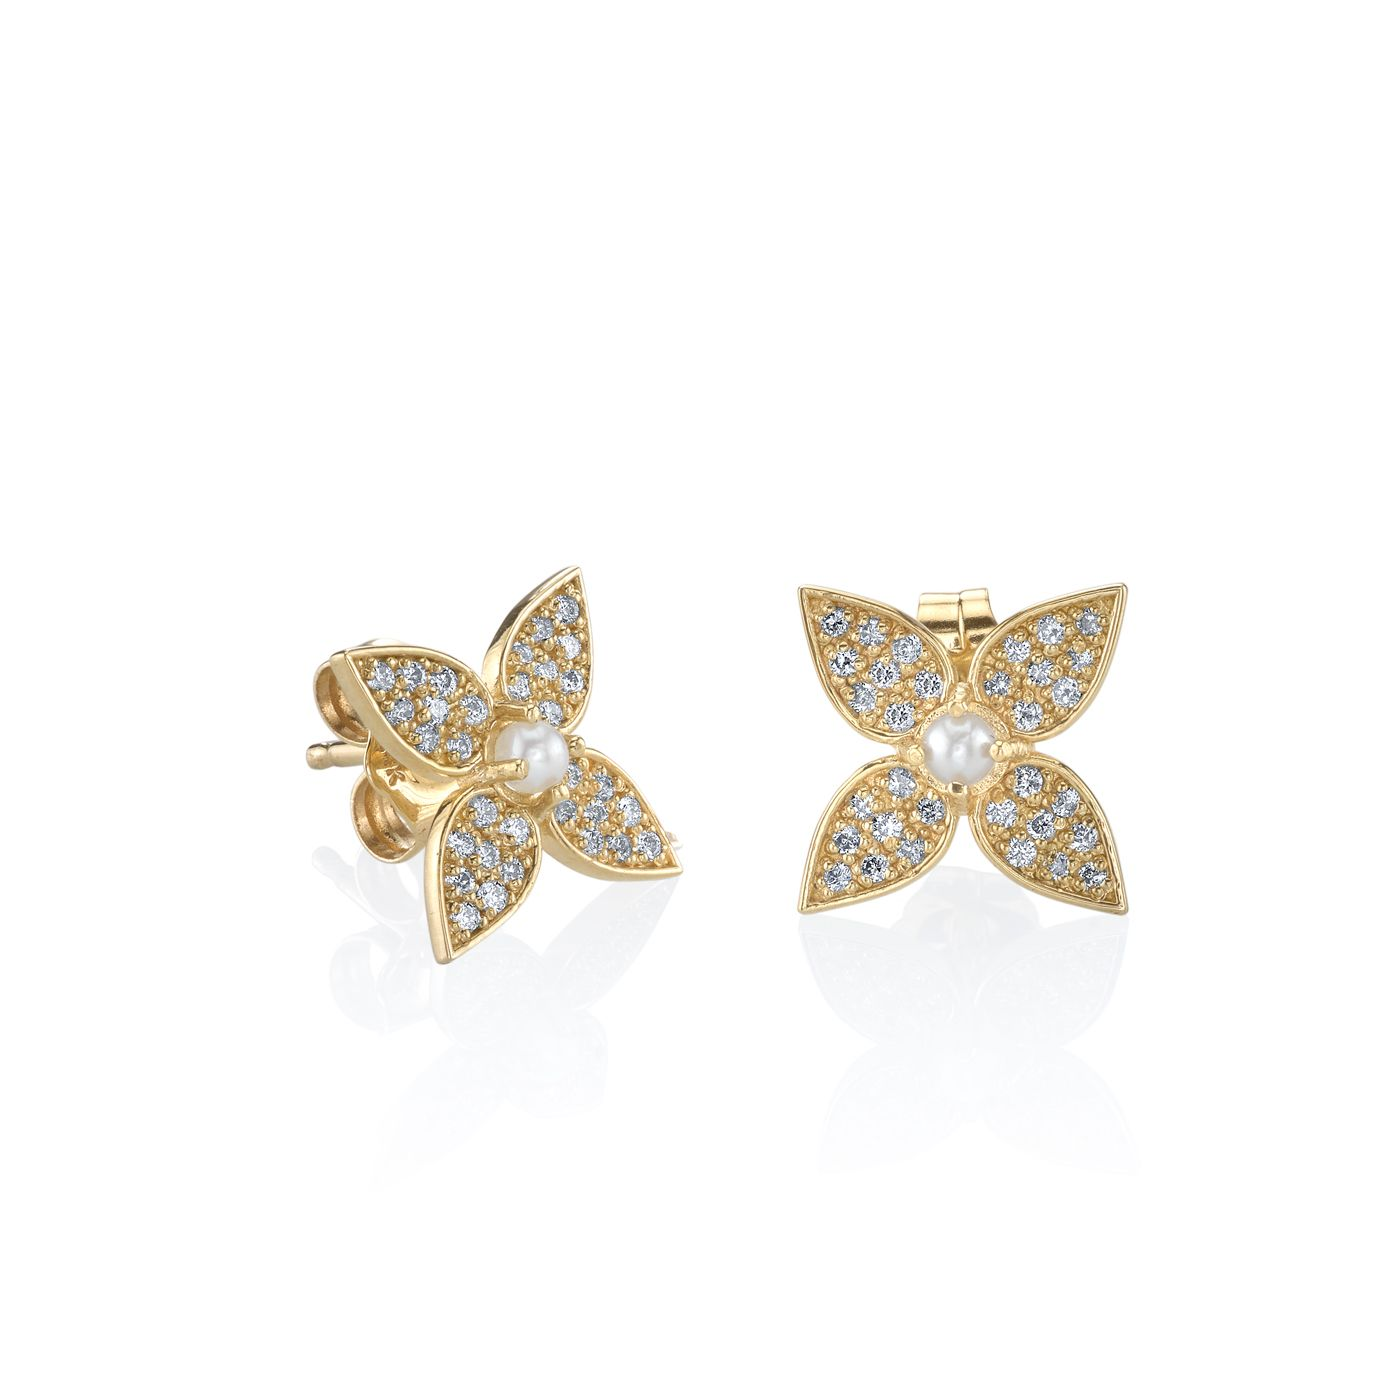 Paisley Diamond & Pearl Stud Earrings